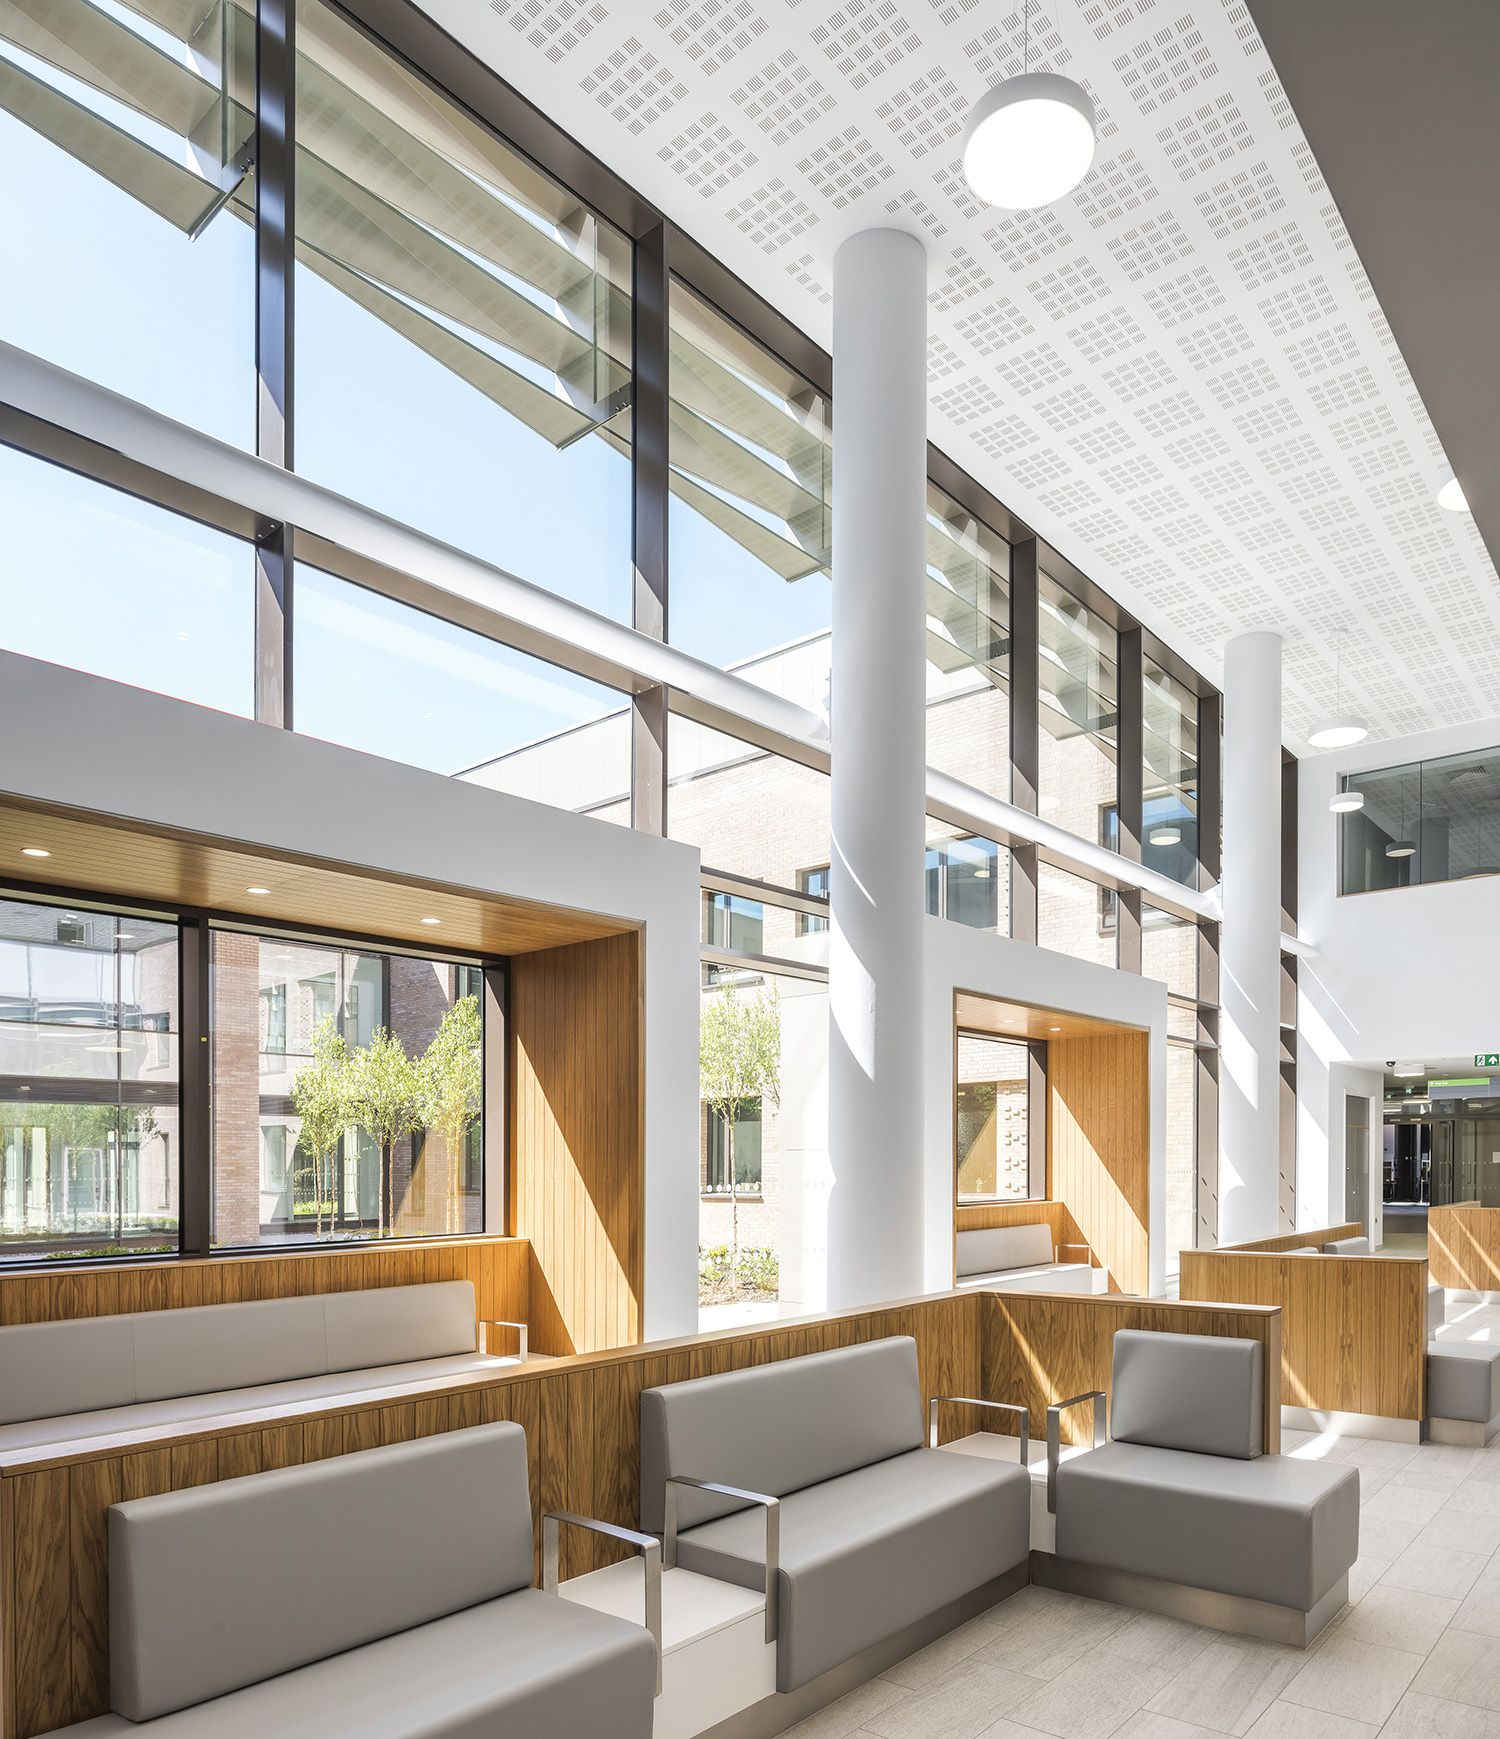 Omagh Hospital & Primary Care Complex designed by TODD